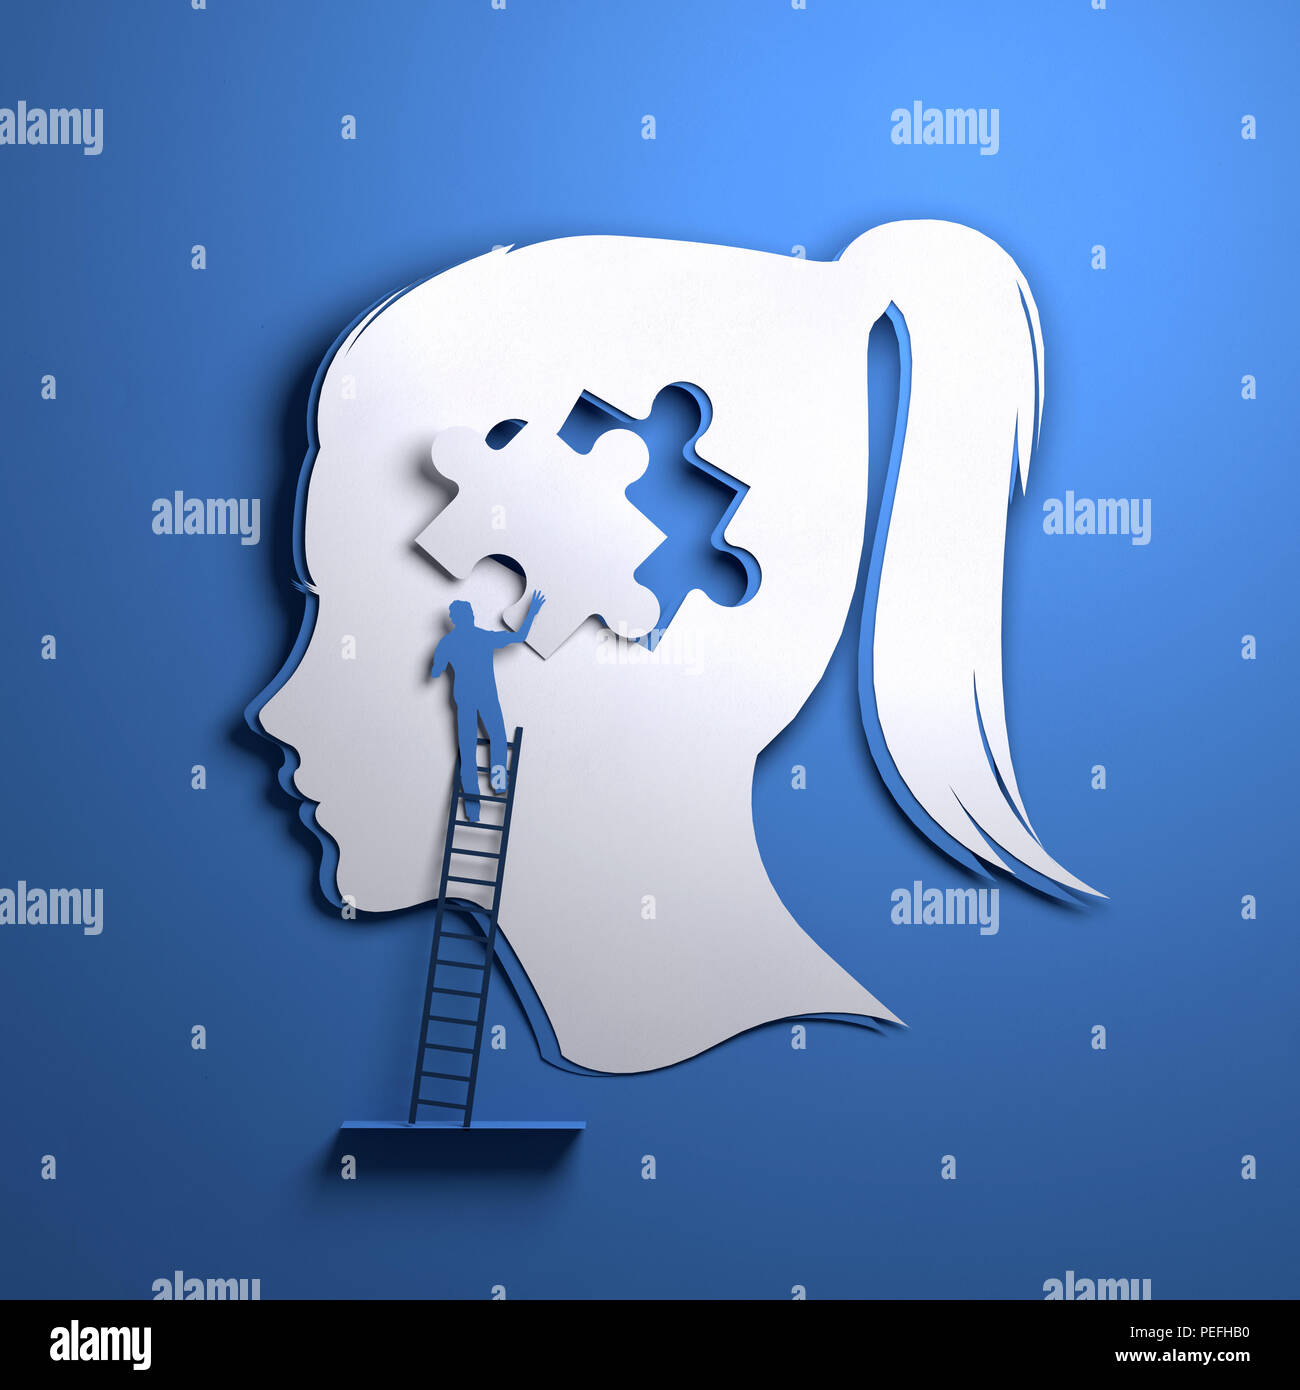 Folded Paper art origami. A silhouette of a womens head with a person adding a puzzle piece. Conceptual mindfulness 3D illustration. - Stock Image